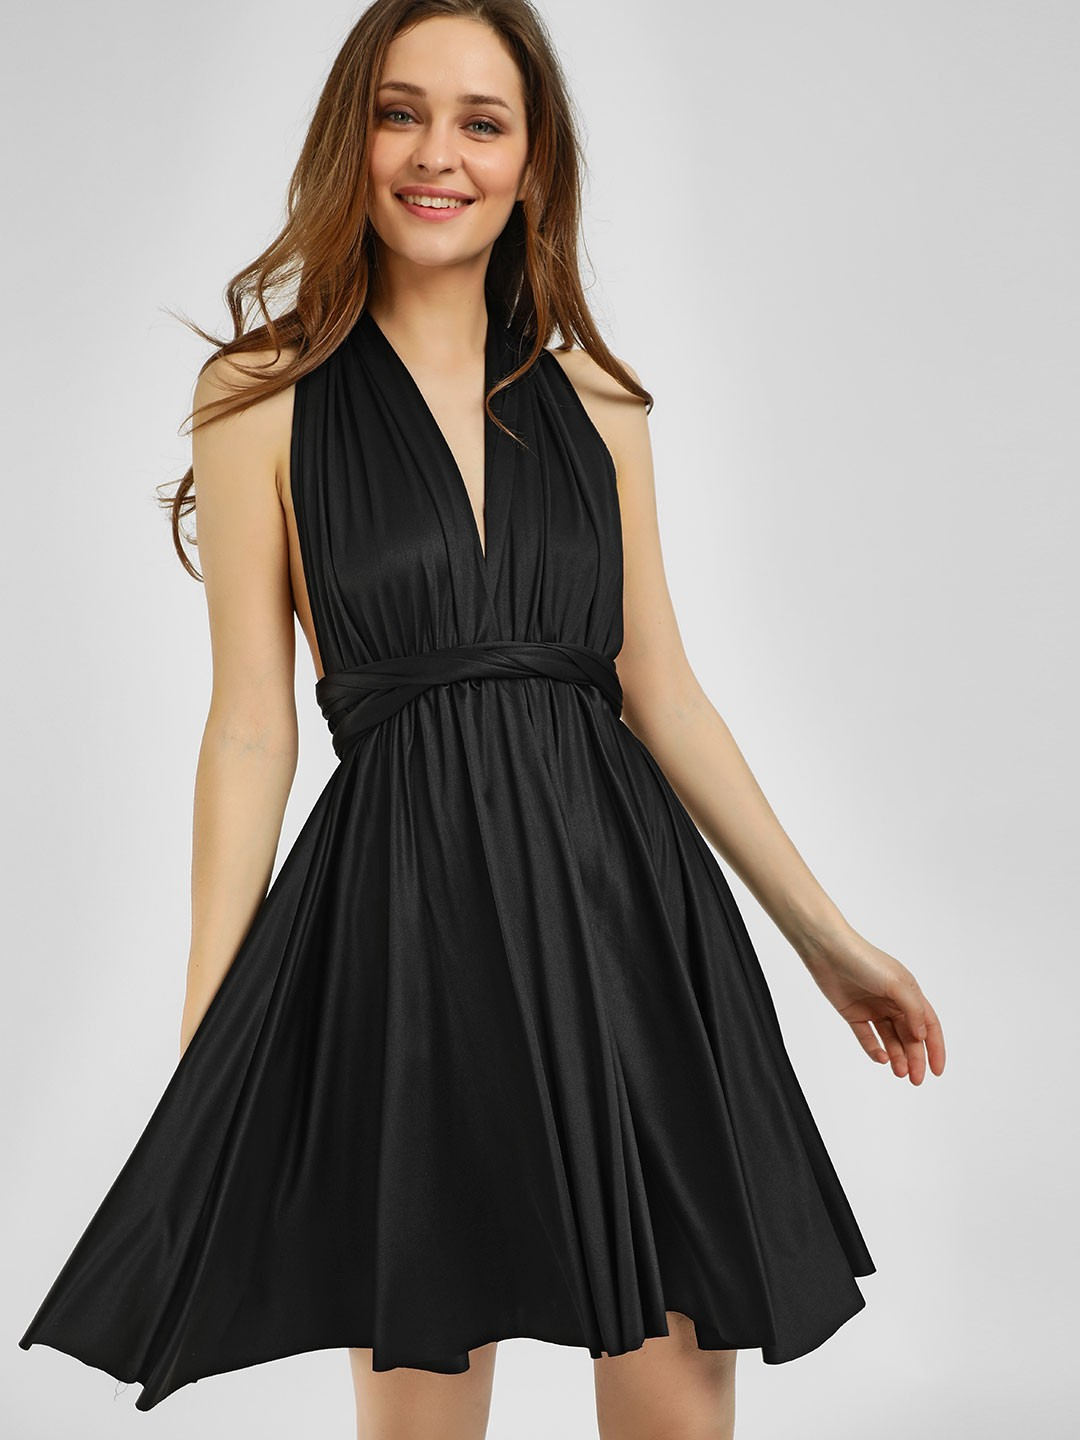 Origami Lily Black Infinity Wrap Skater Dress 1